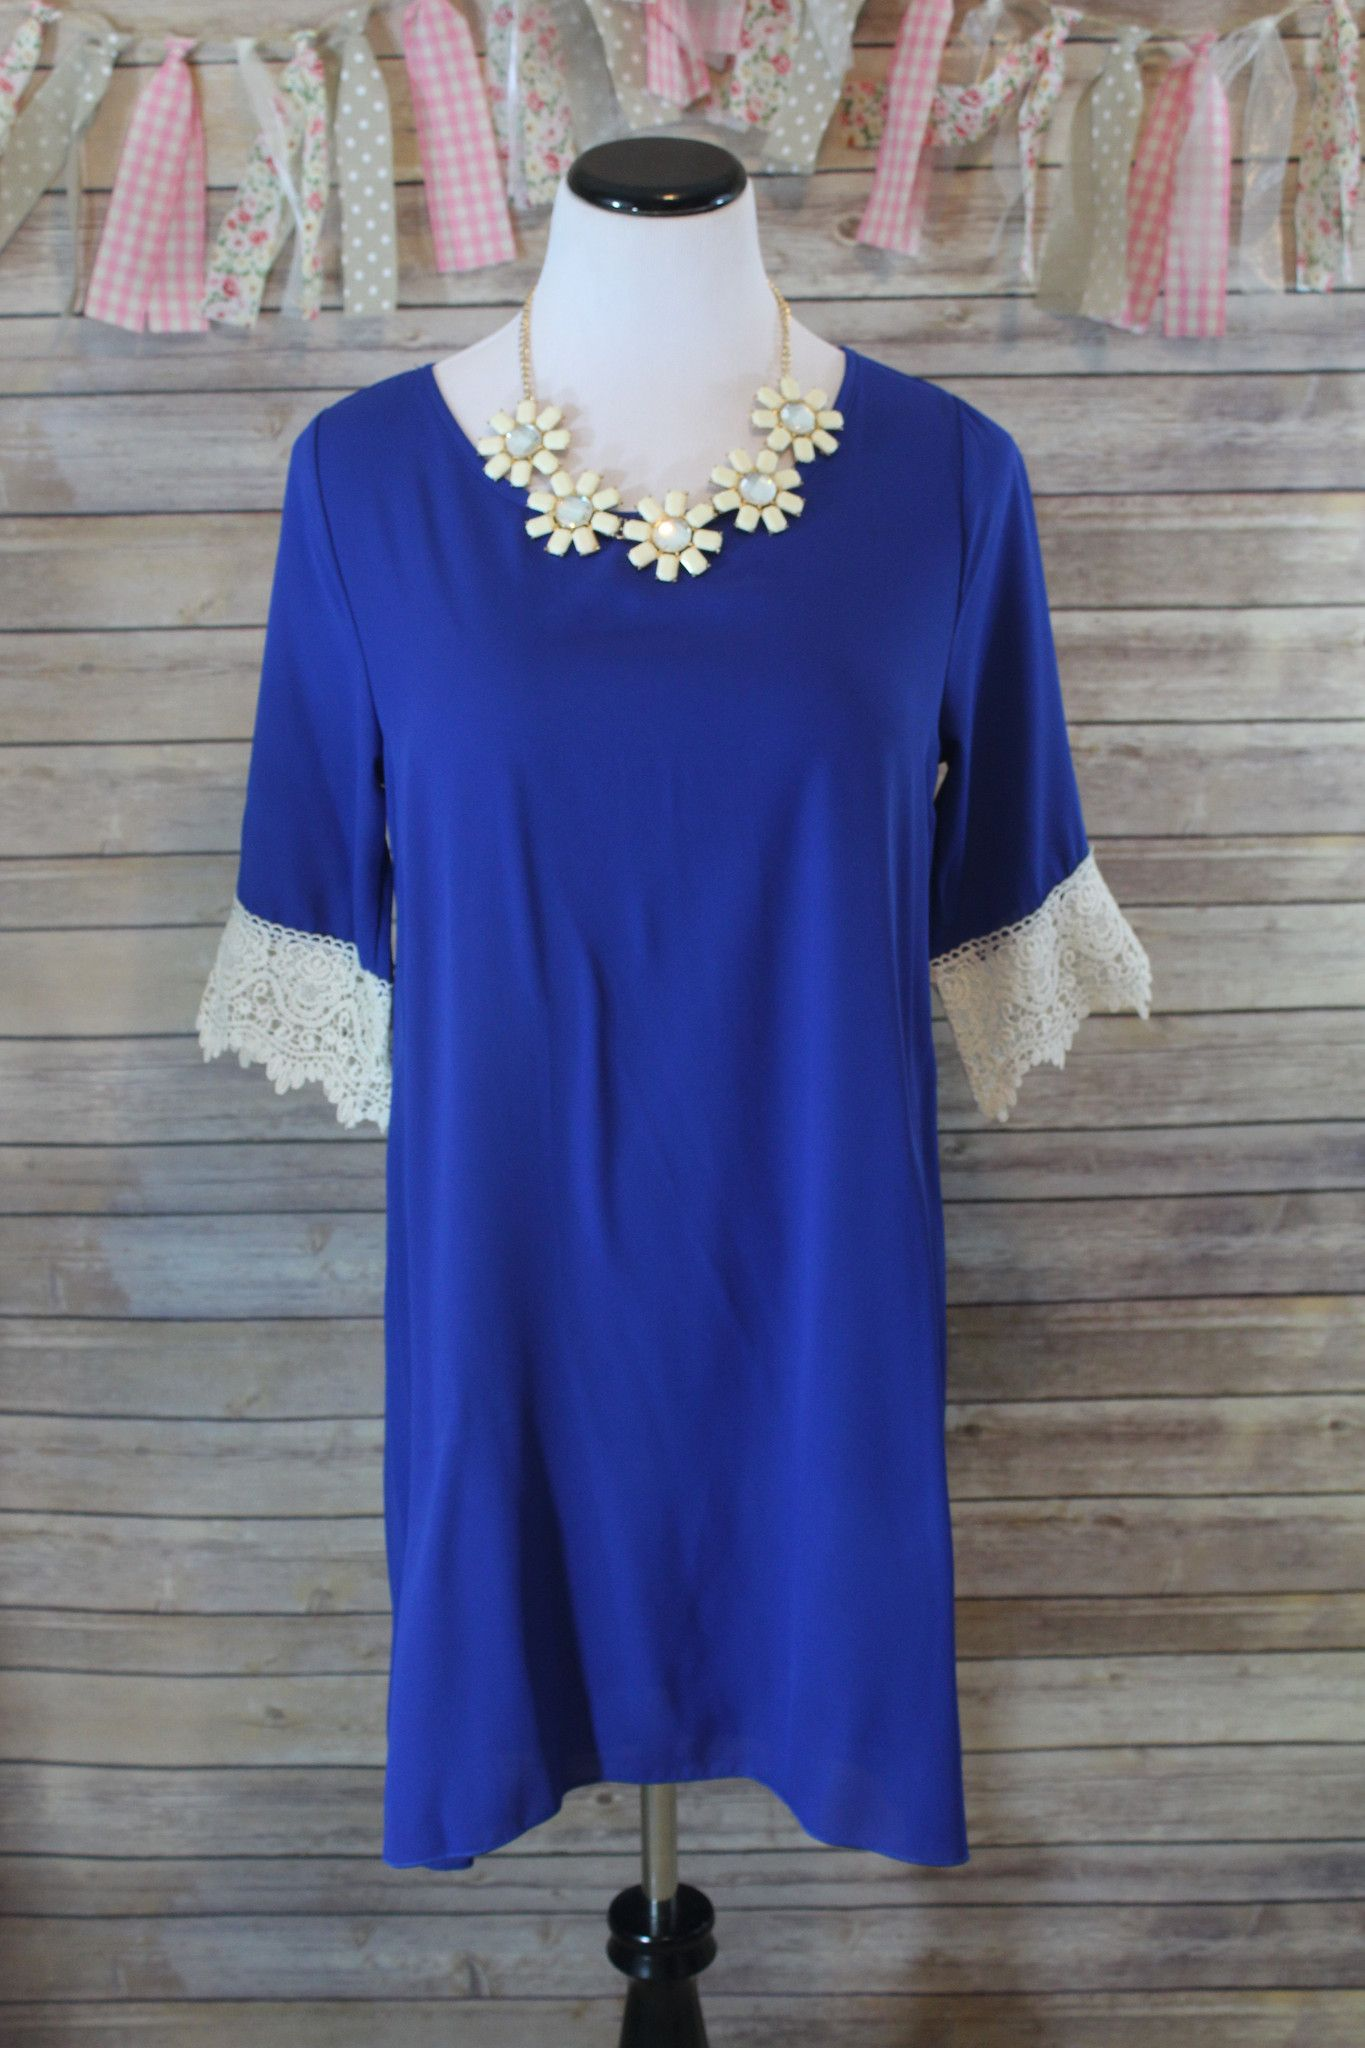 Royal blue lace dress styles  Sophisticated Style Royal Blue Dress with Ivory Lace Detail  Blue